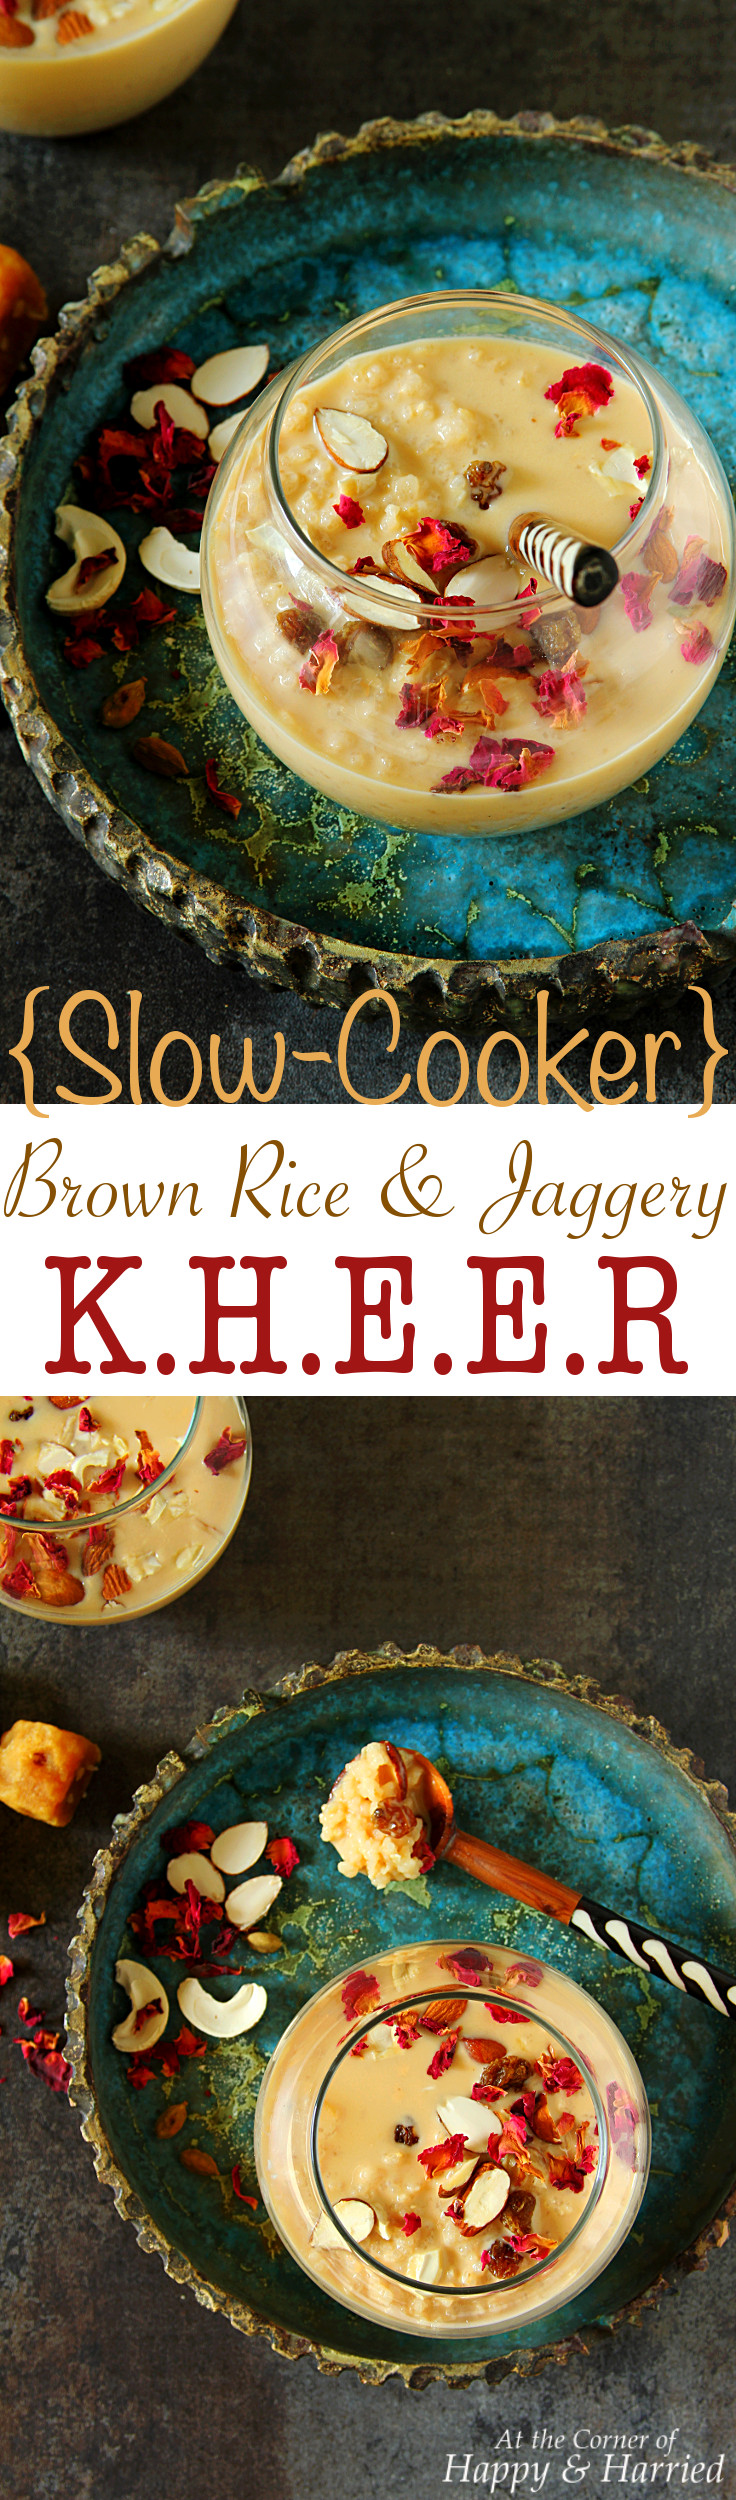 Slow Cooker Brown Rice Jaggery Kheer Happy&harried Do You Like Desserts? Do  You Have A How To Cook